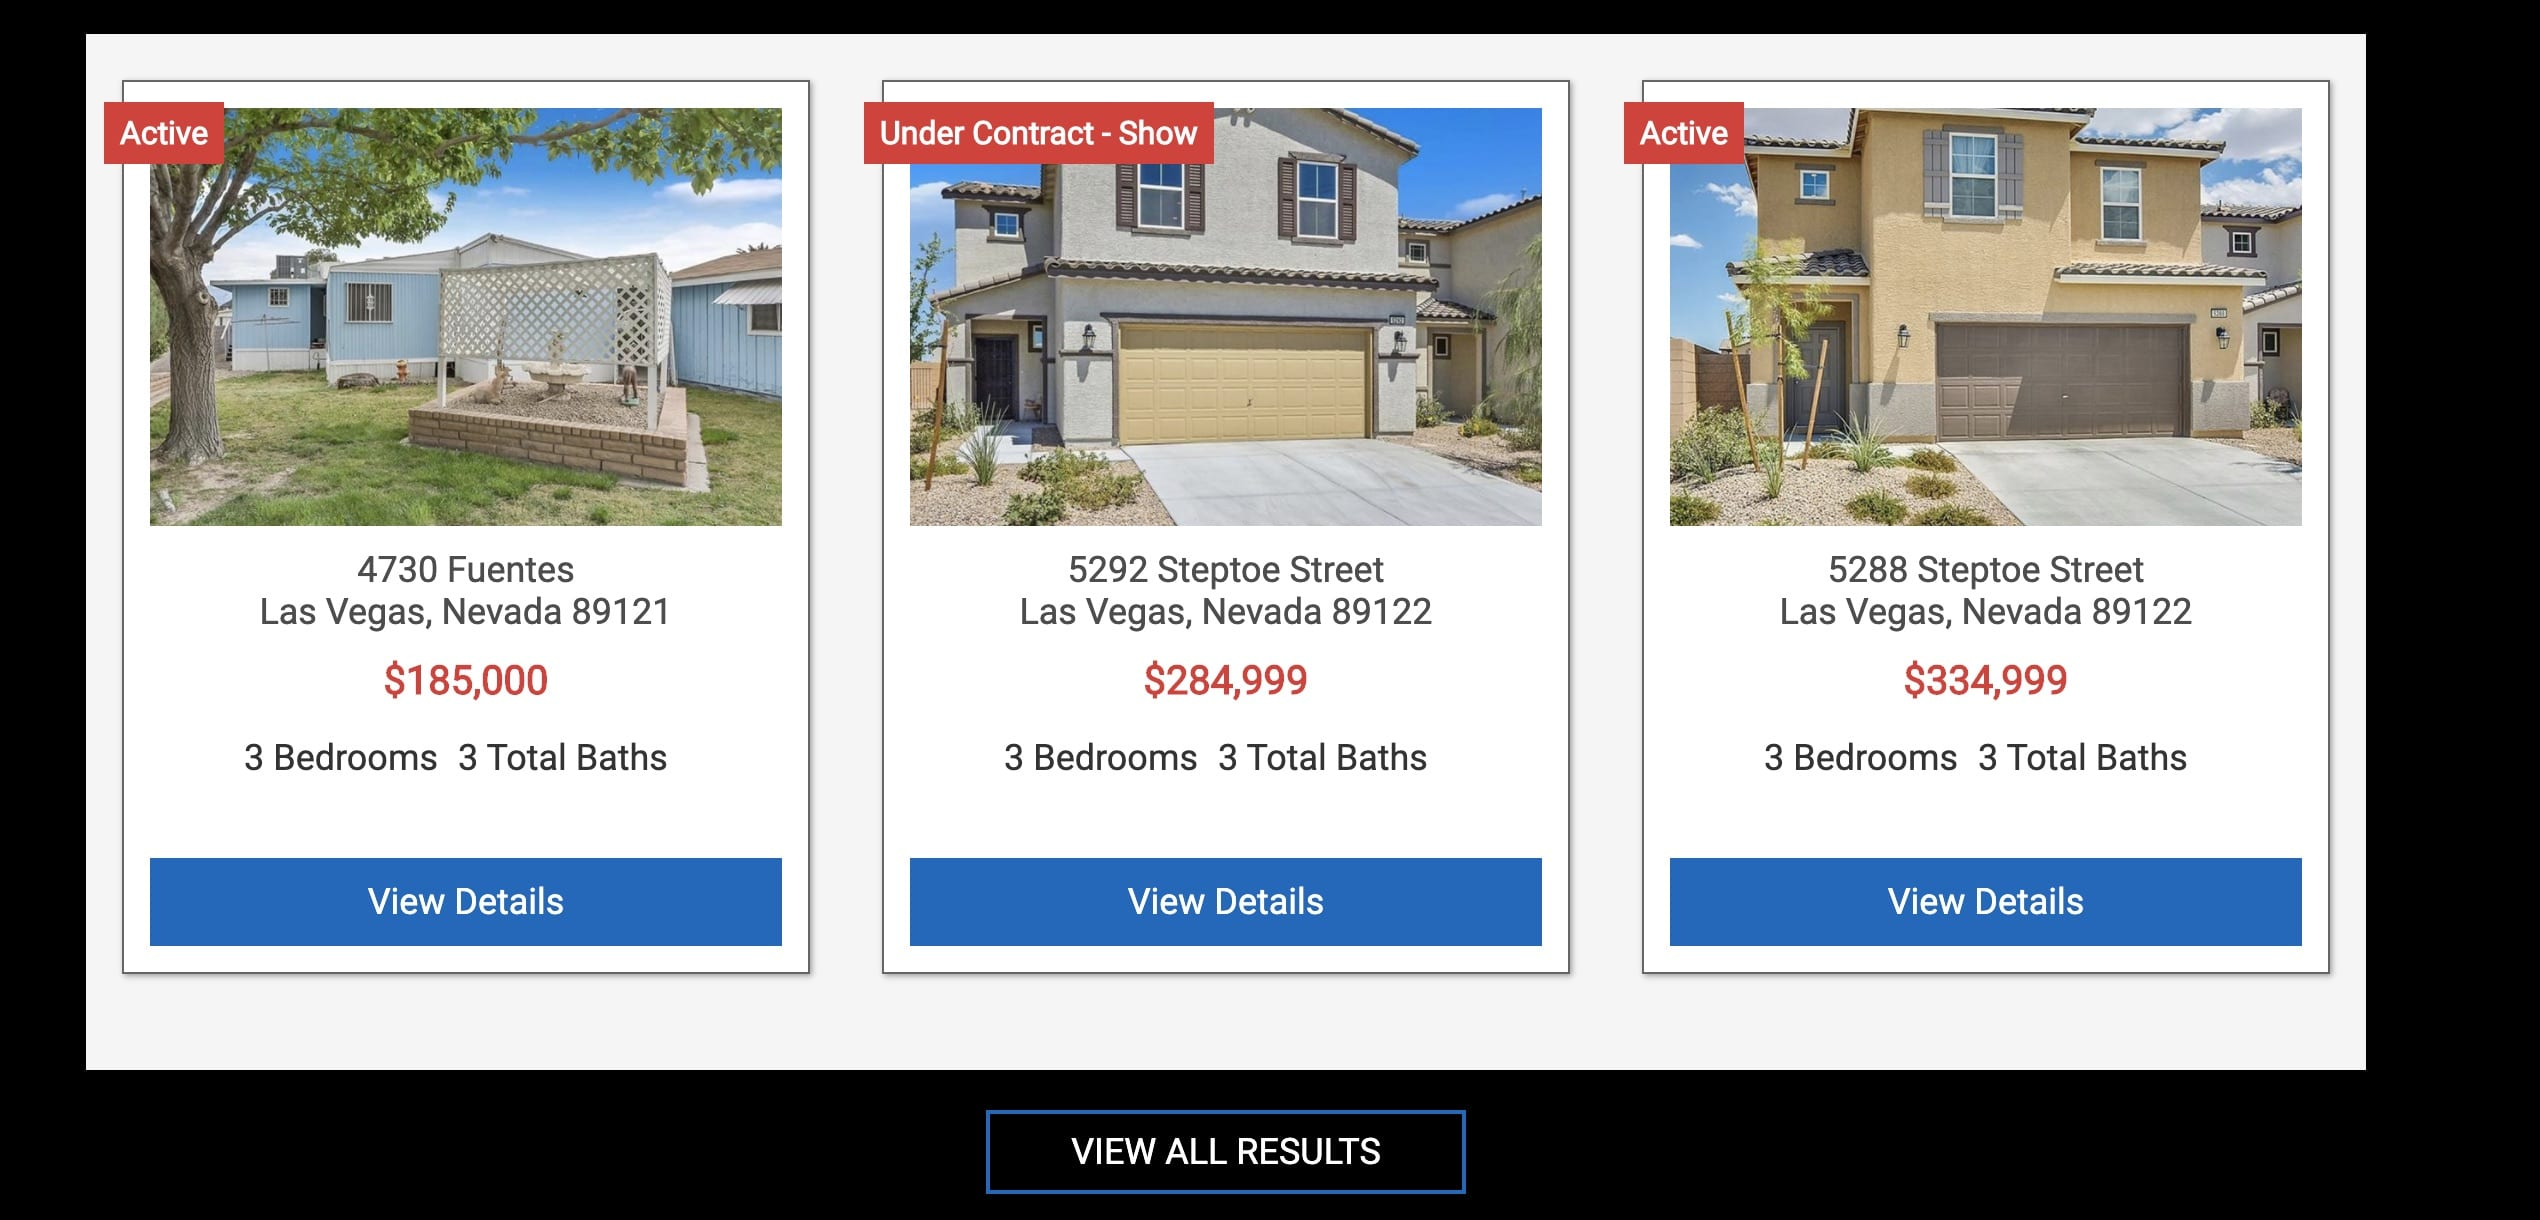 This is a sample of the IDX Broker 3 column widget. You can customize how many houses you want to appear in a row by adjusting the columns.